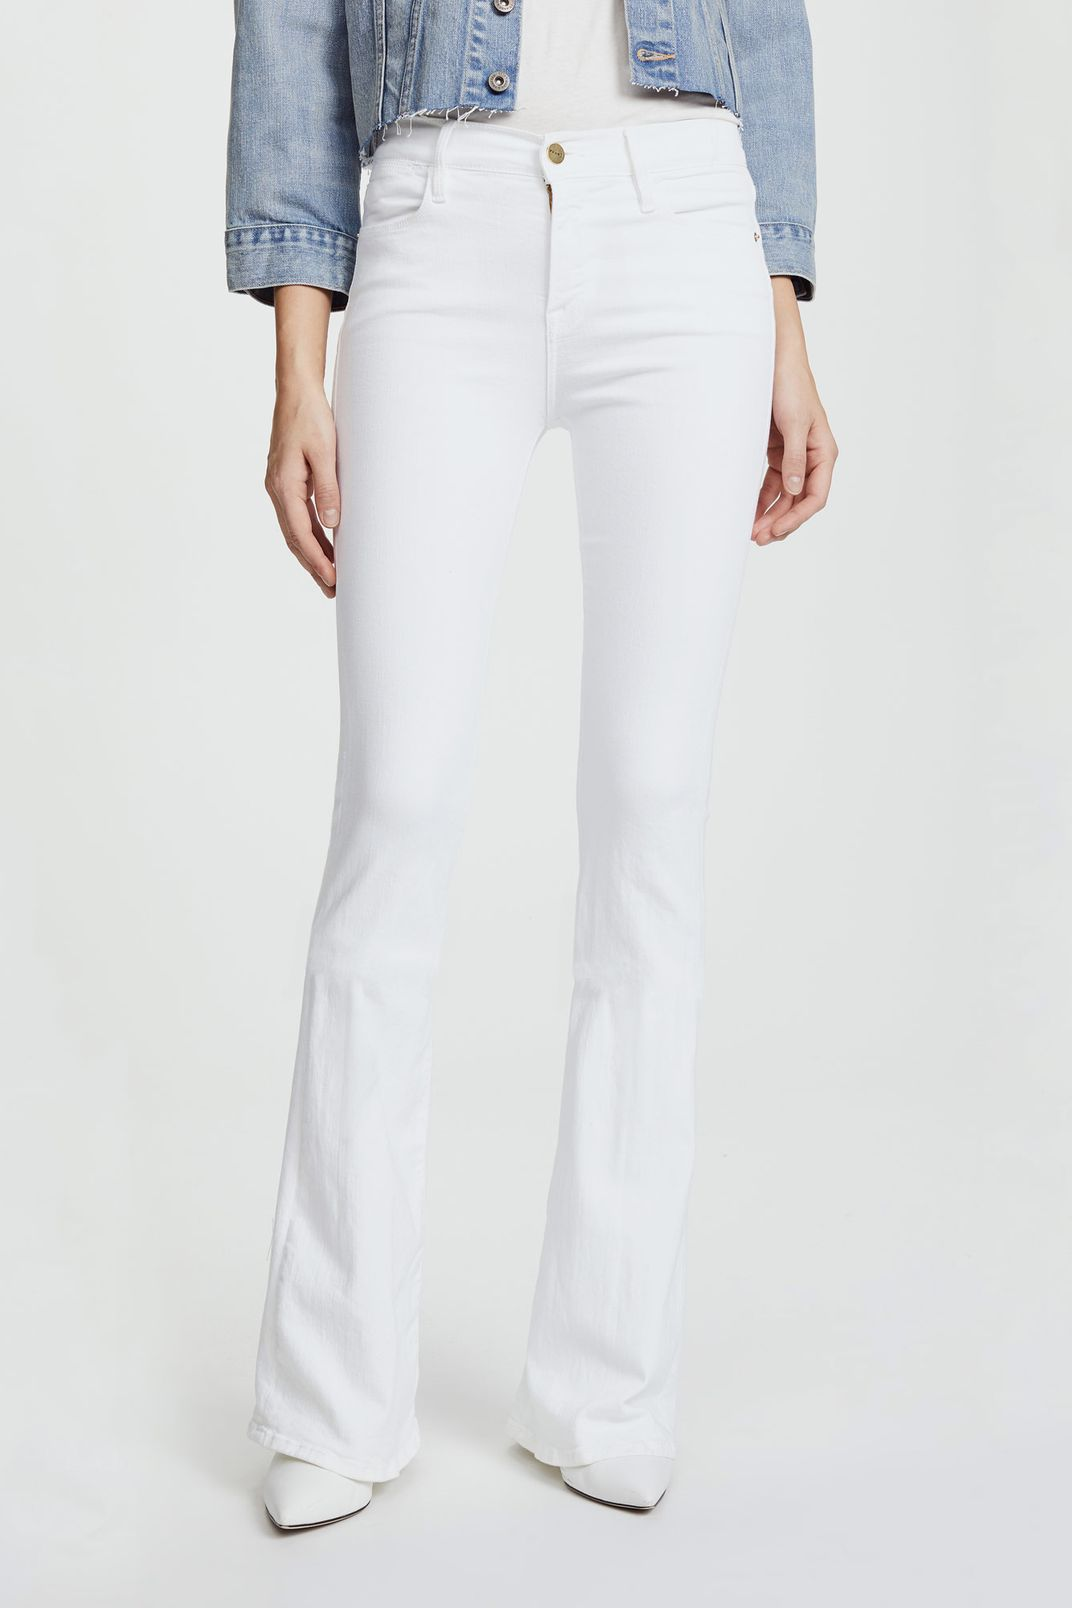 ee4f66bbefa The 14 Best White Jeans for Women of All Sizes 2018